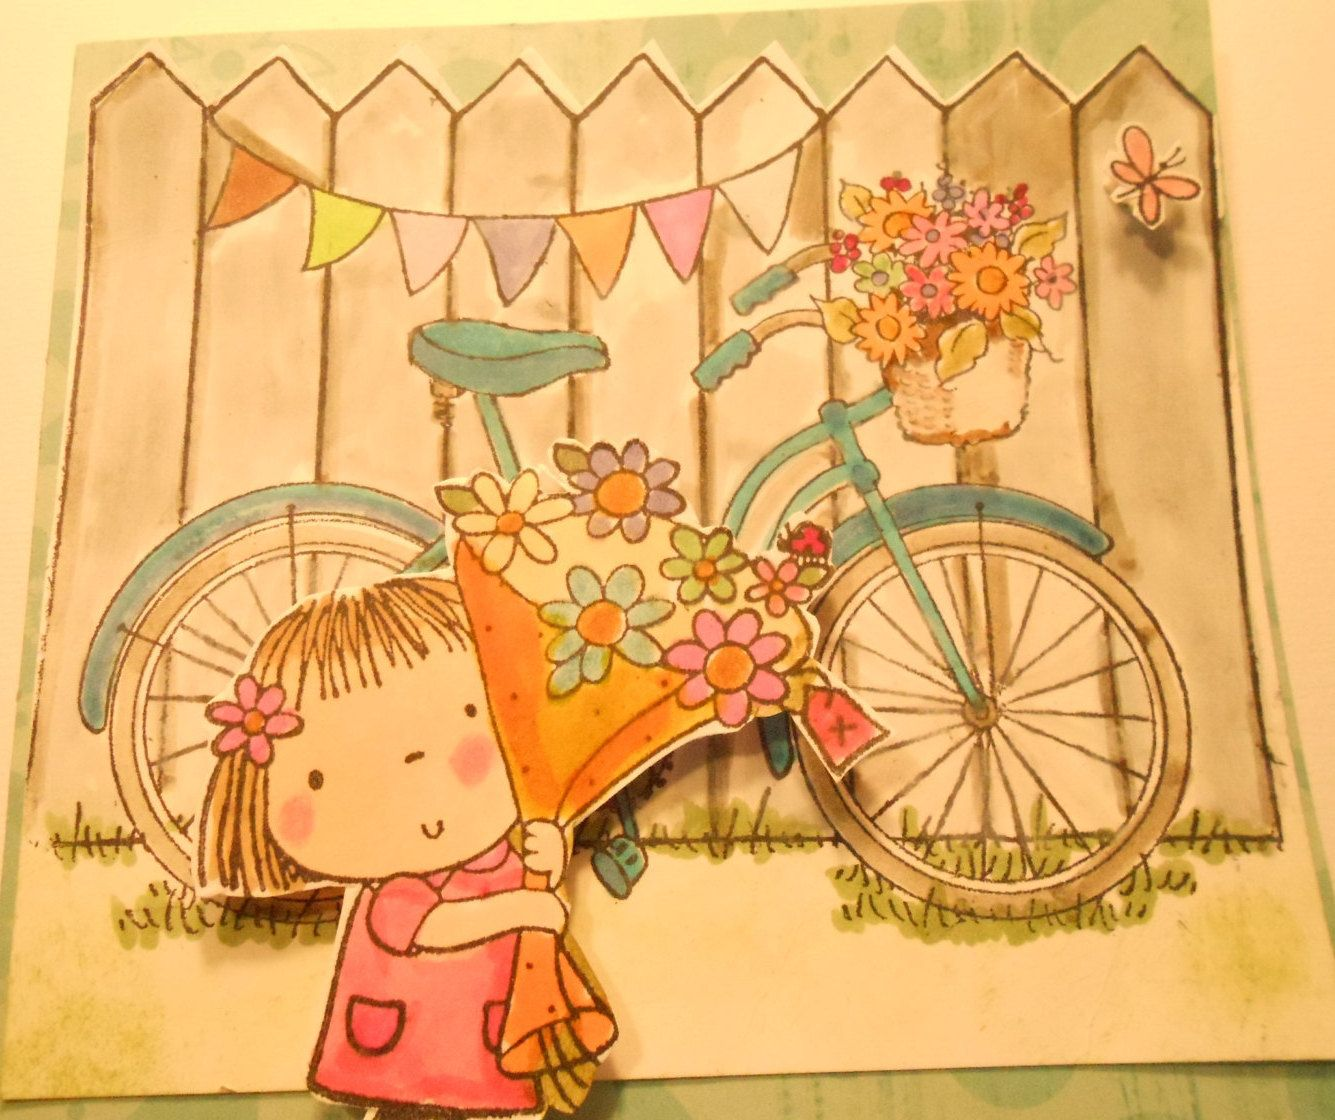 3 CUTY Cards - Blank - Cute Girl(s) Ready For a Bike Ride - Handmade by OhayoMtnDesigns on Etsy